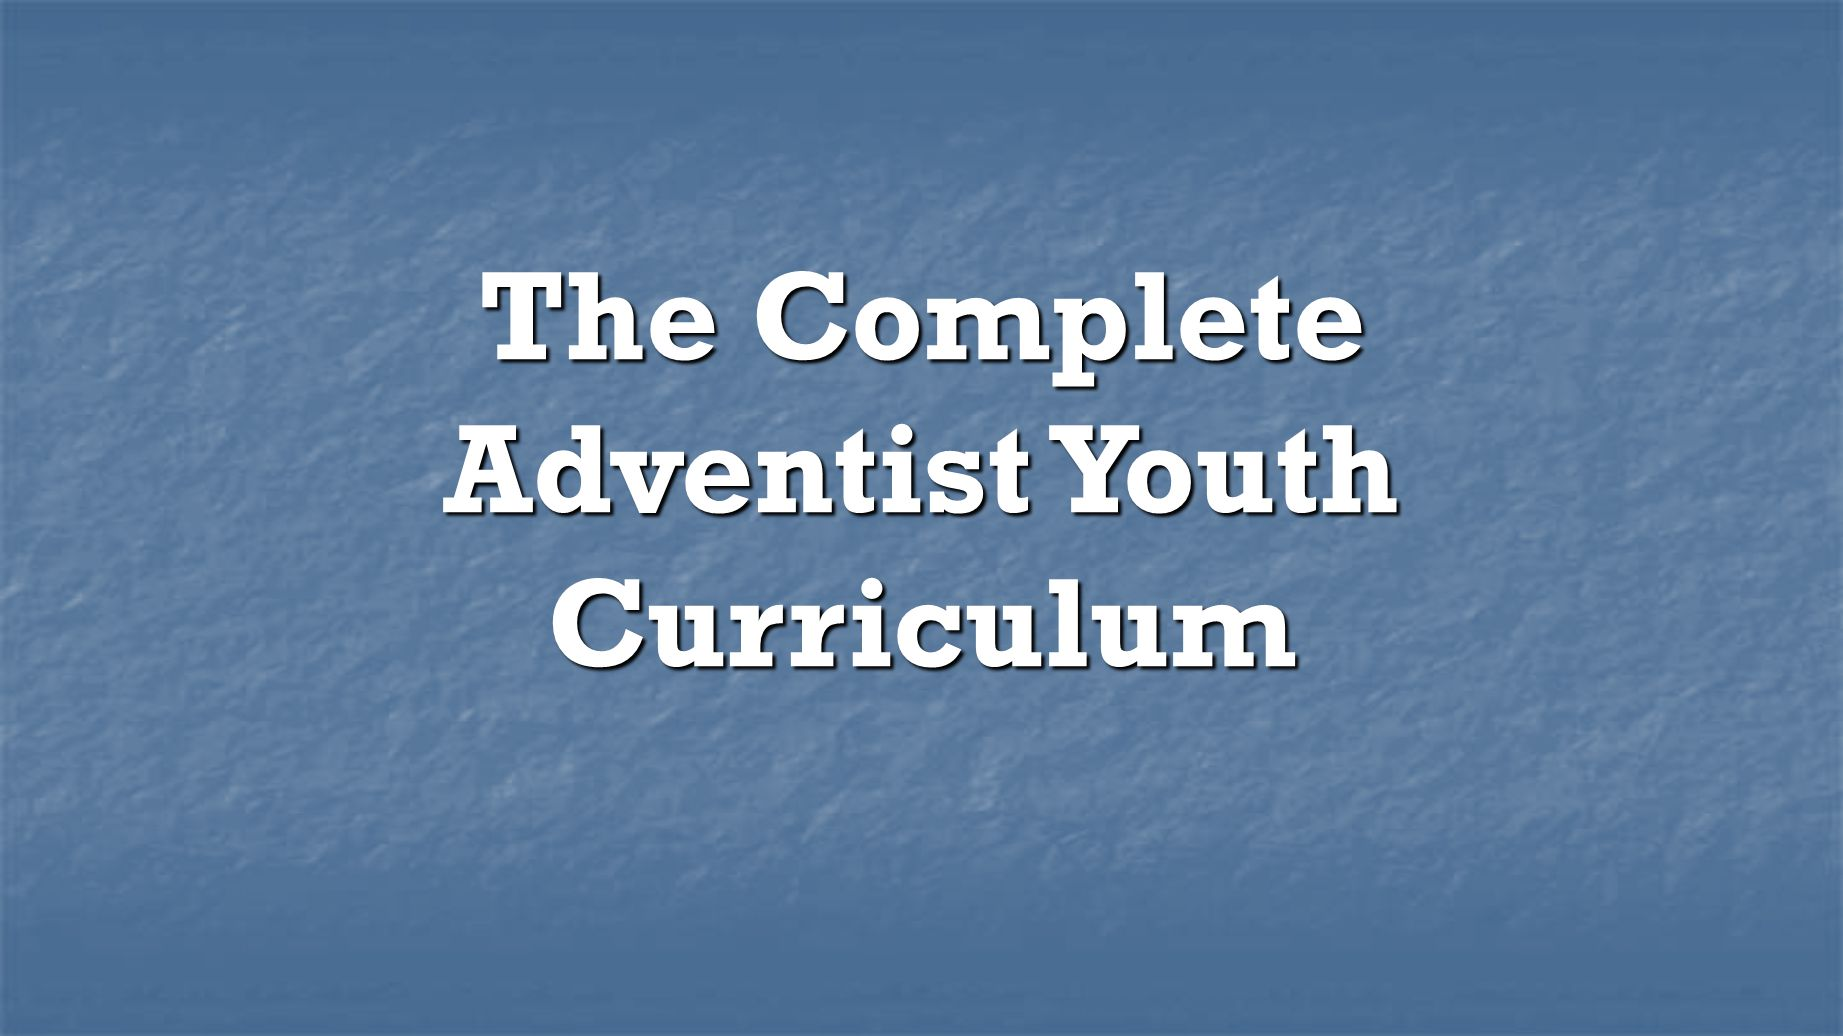 The Complete Adventist Youth Curriculum